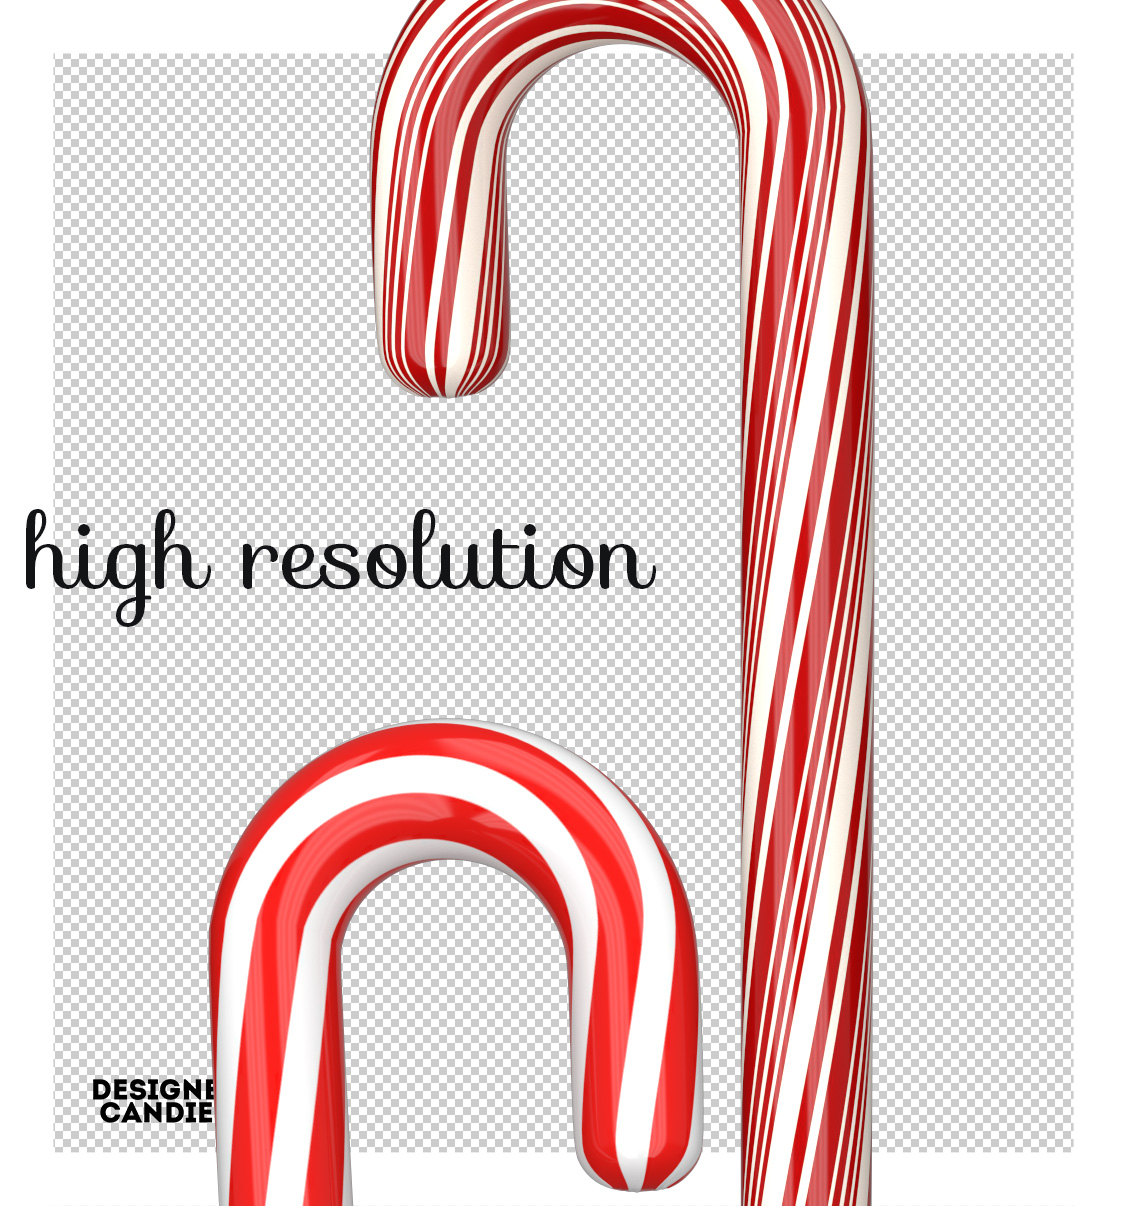 High Resolution Candy Cane Renders